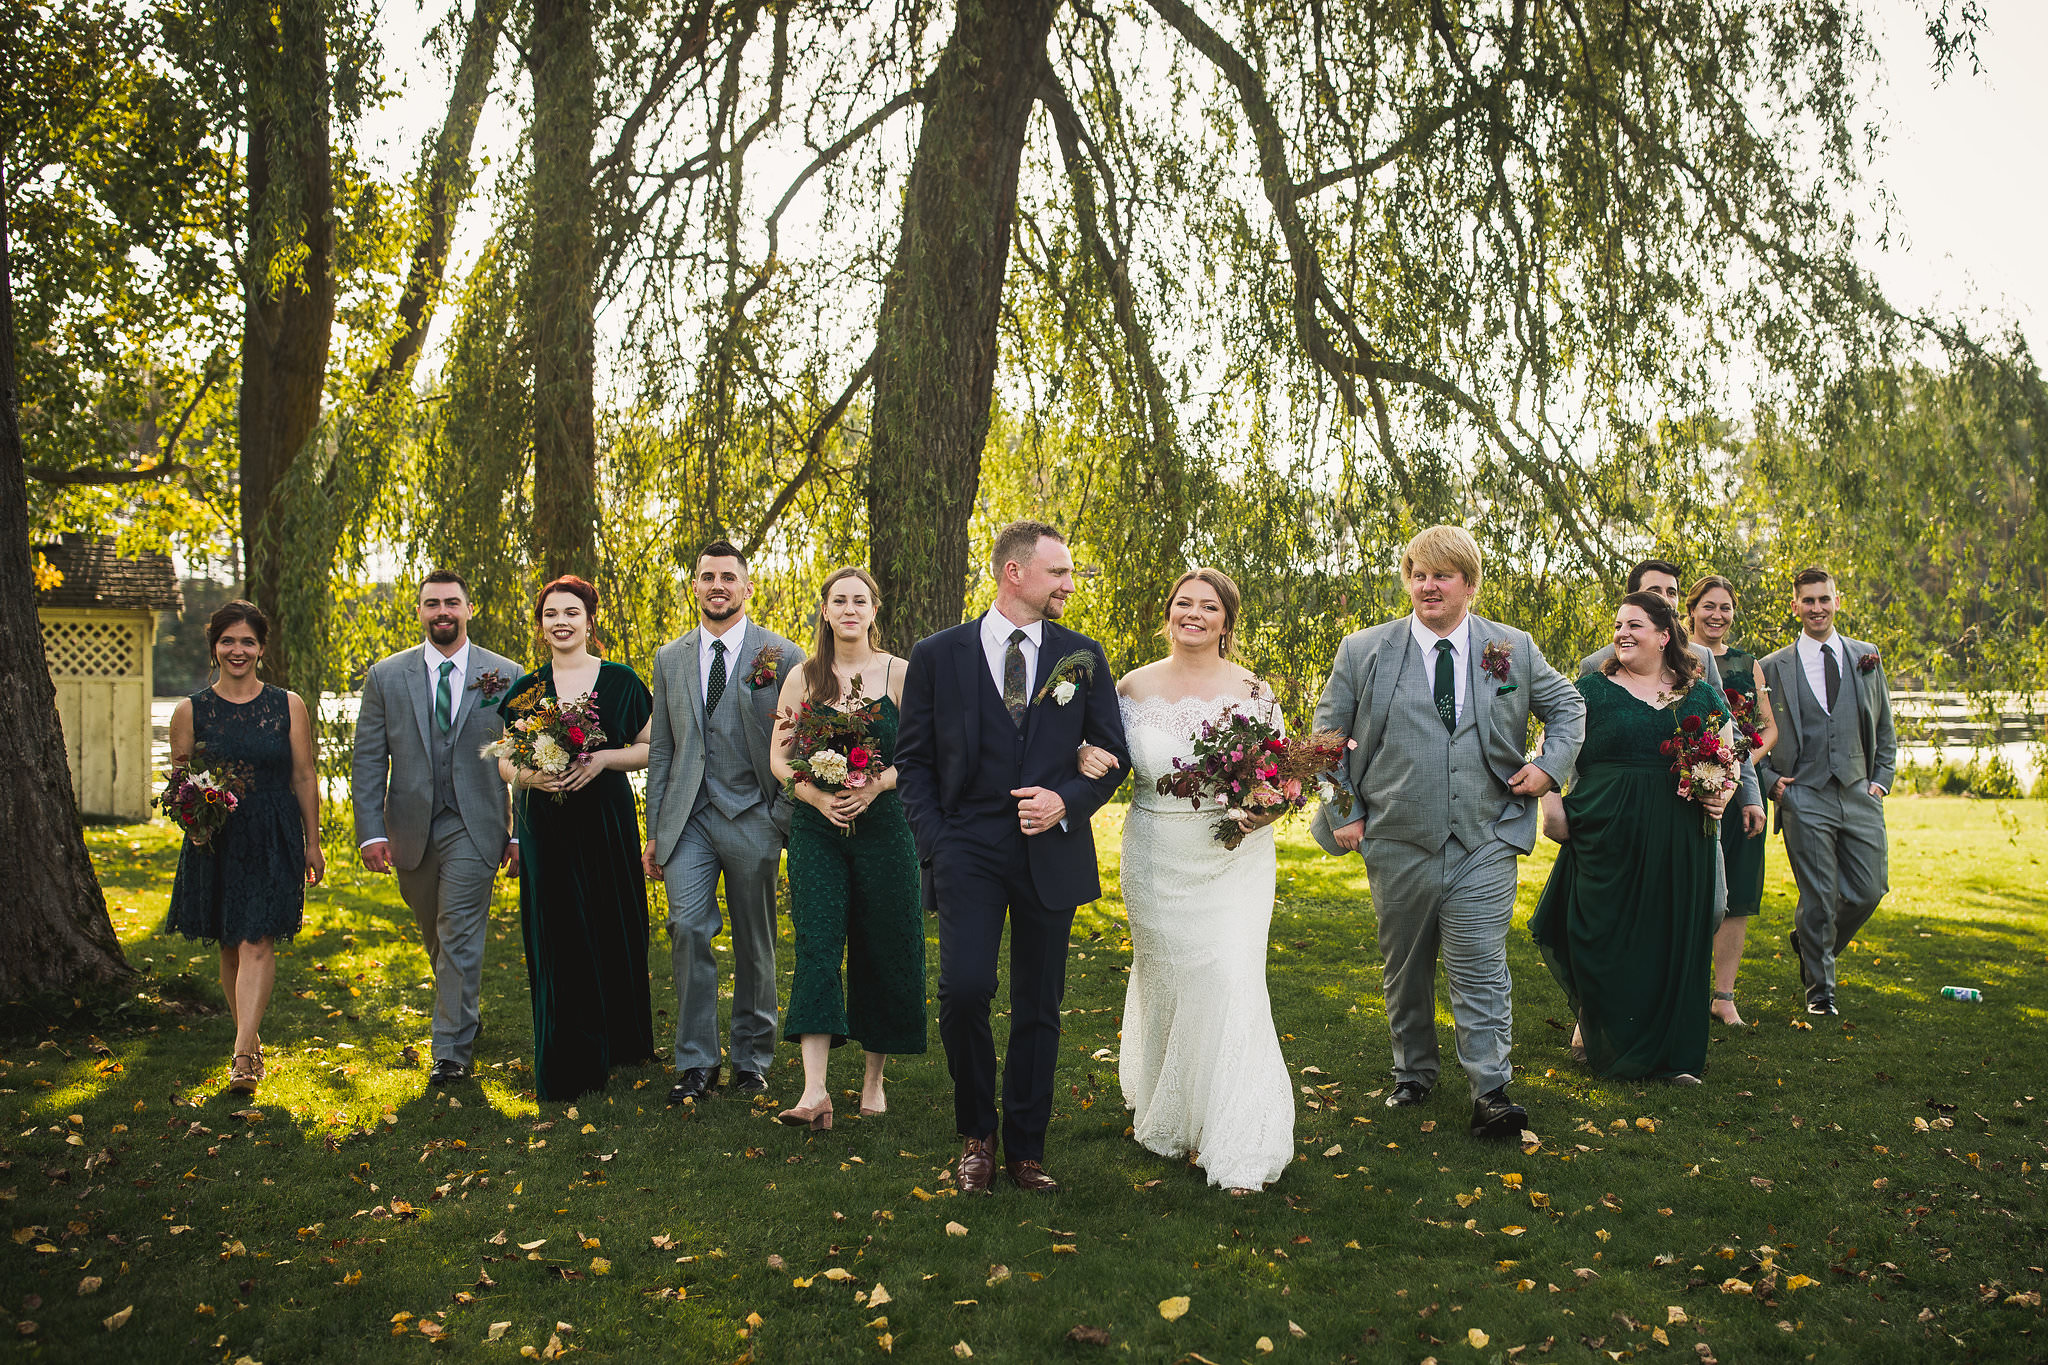 bridal party photos at tralee wedding facility